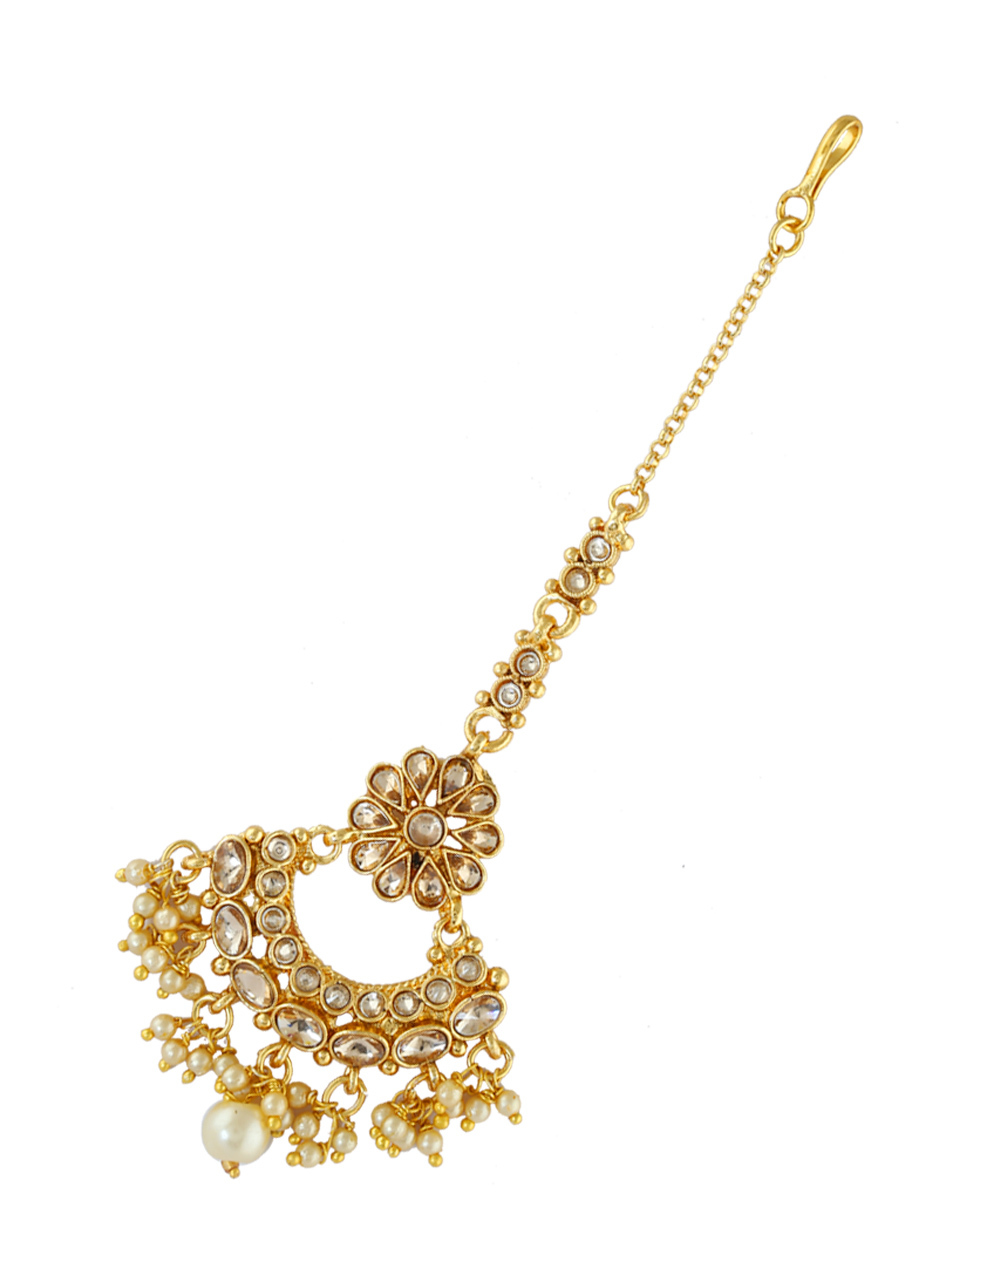 Beautiful Gold Finish Styled With Pearls Beads Mang Tika Jewellery